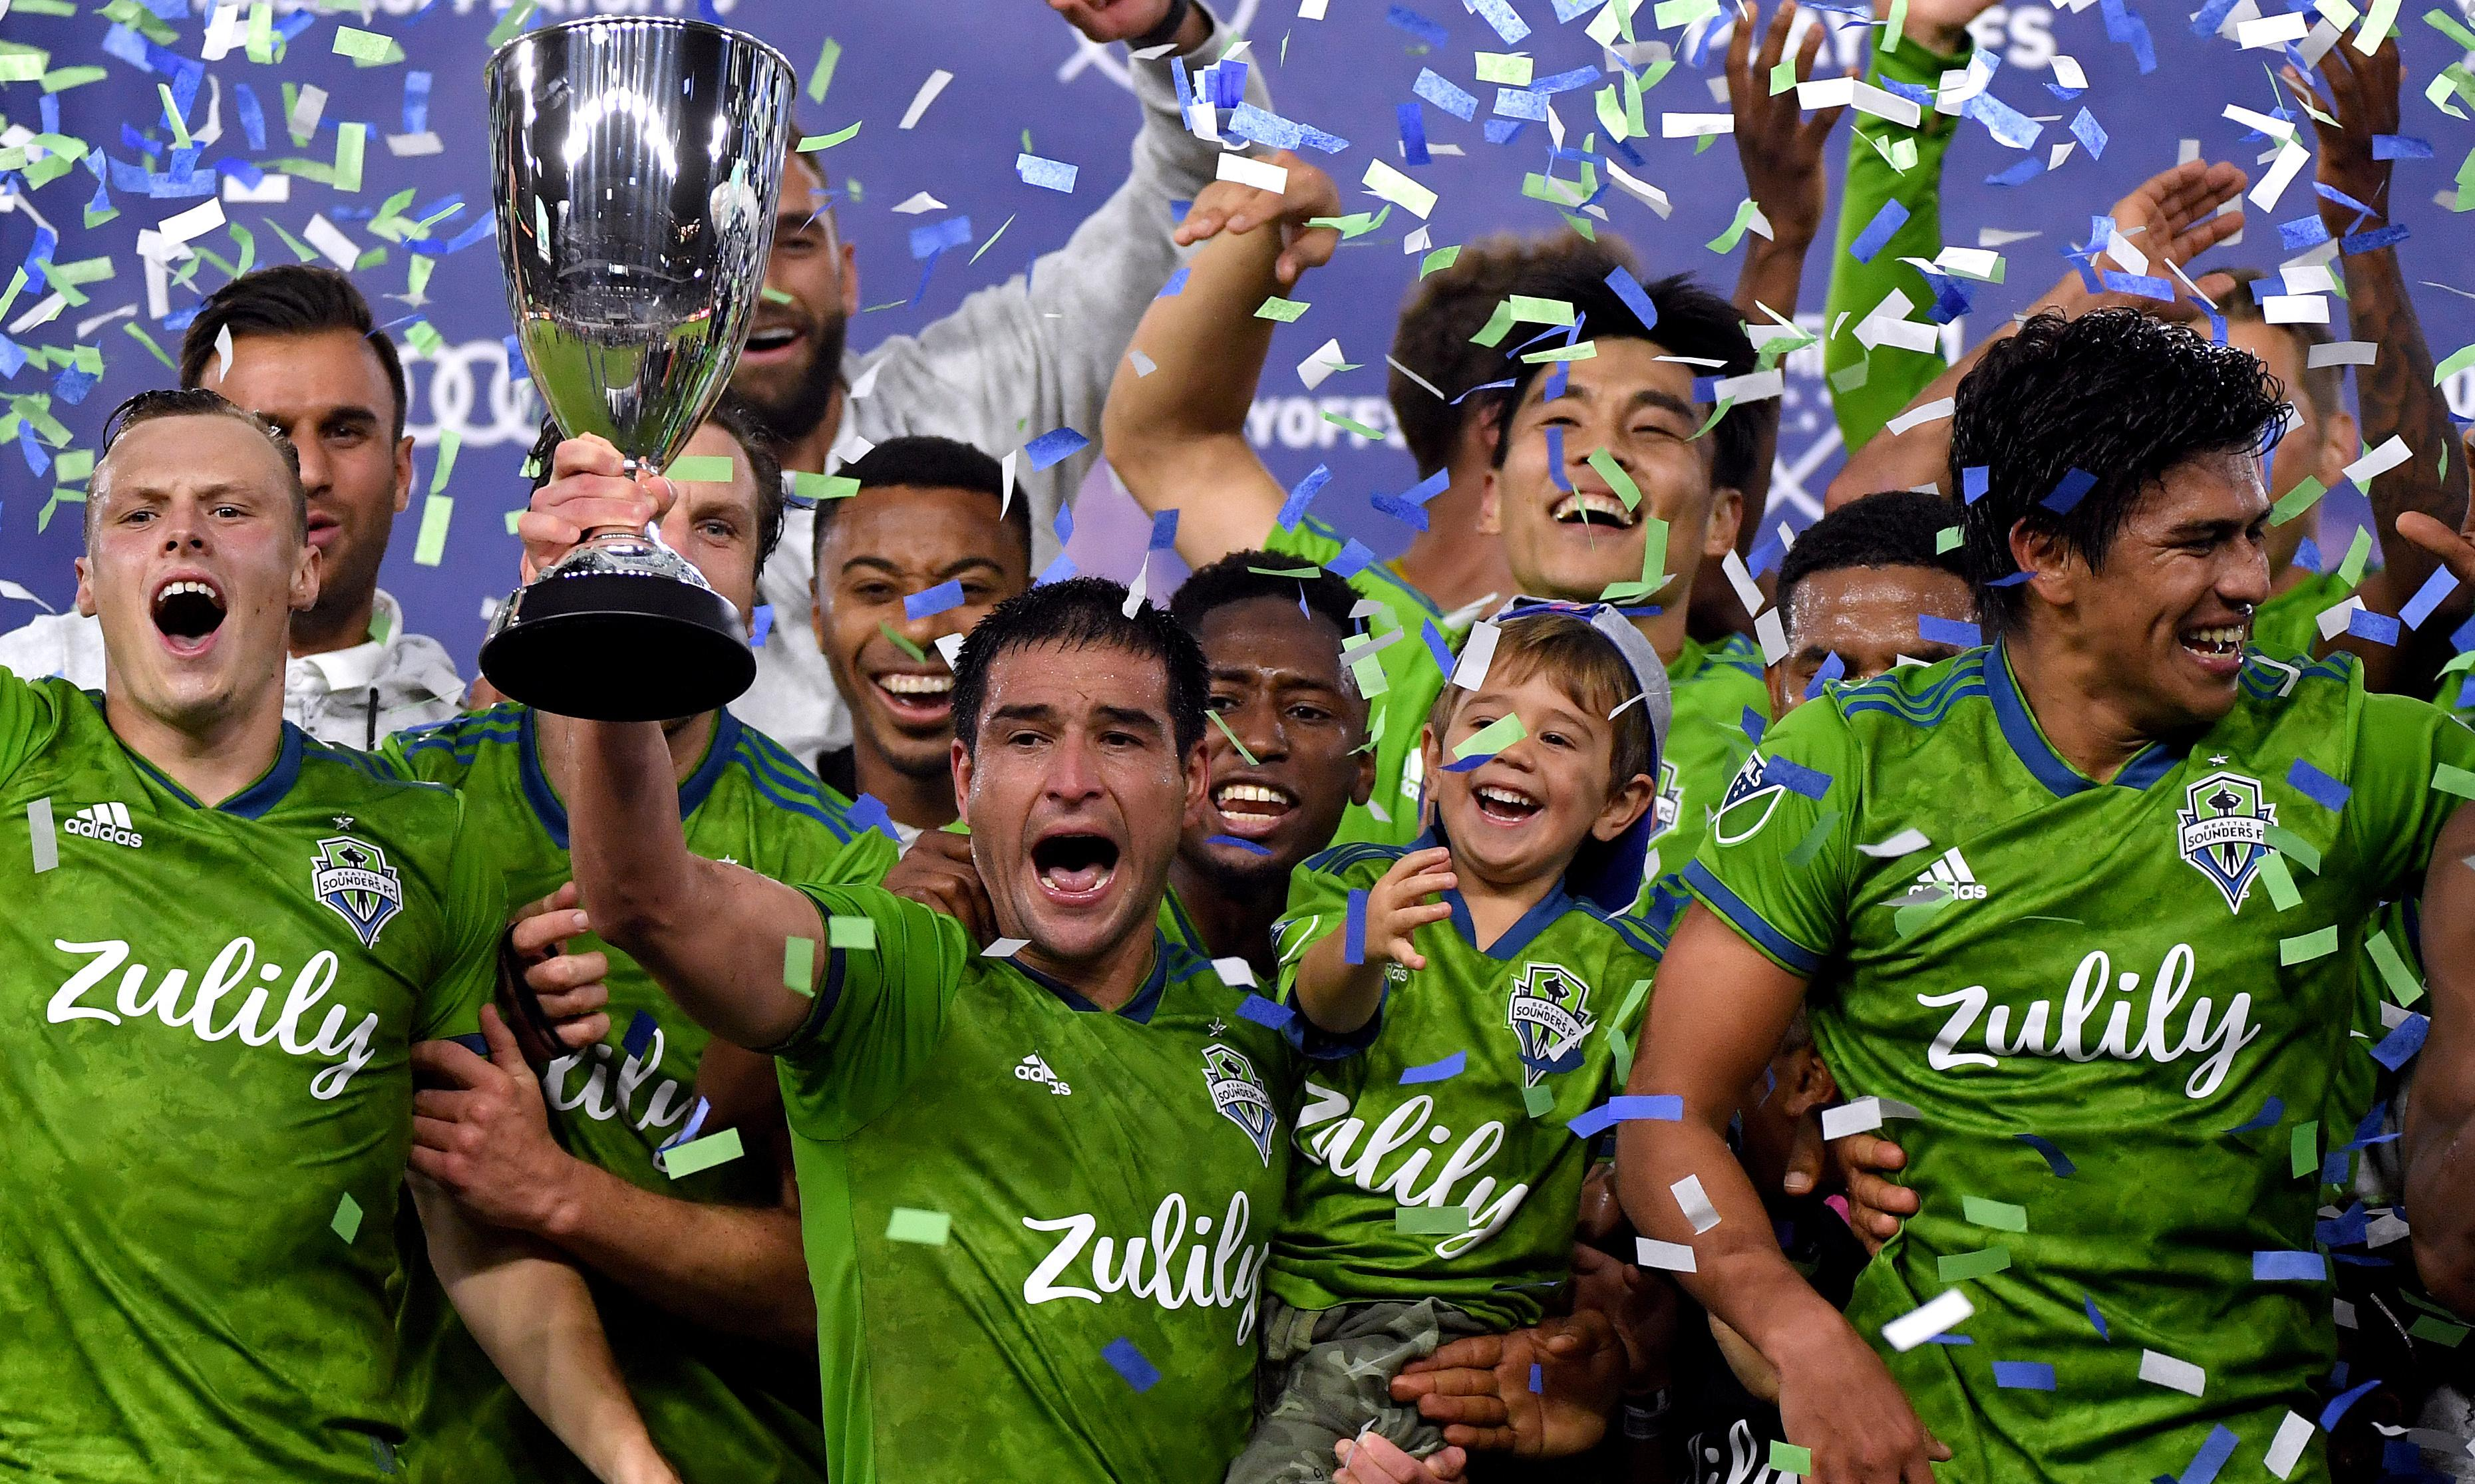 26 teams and counting: has MLS become too big for its own good?